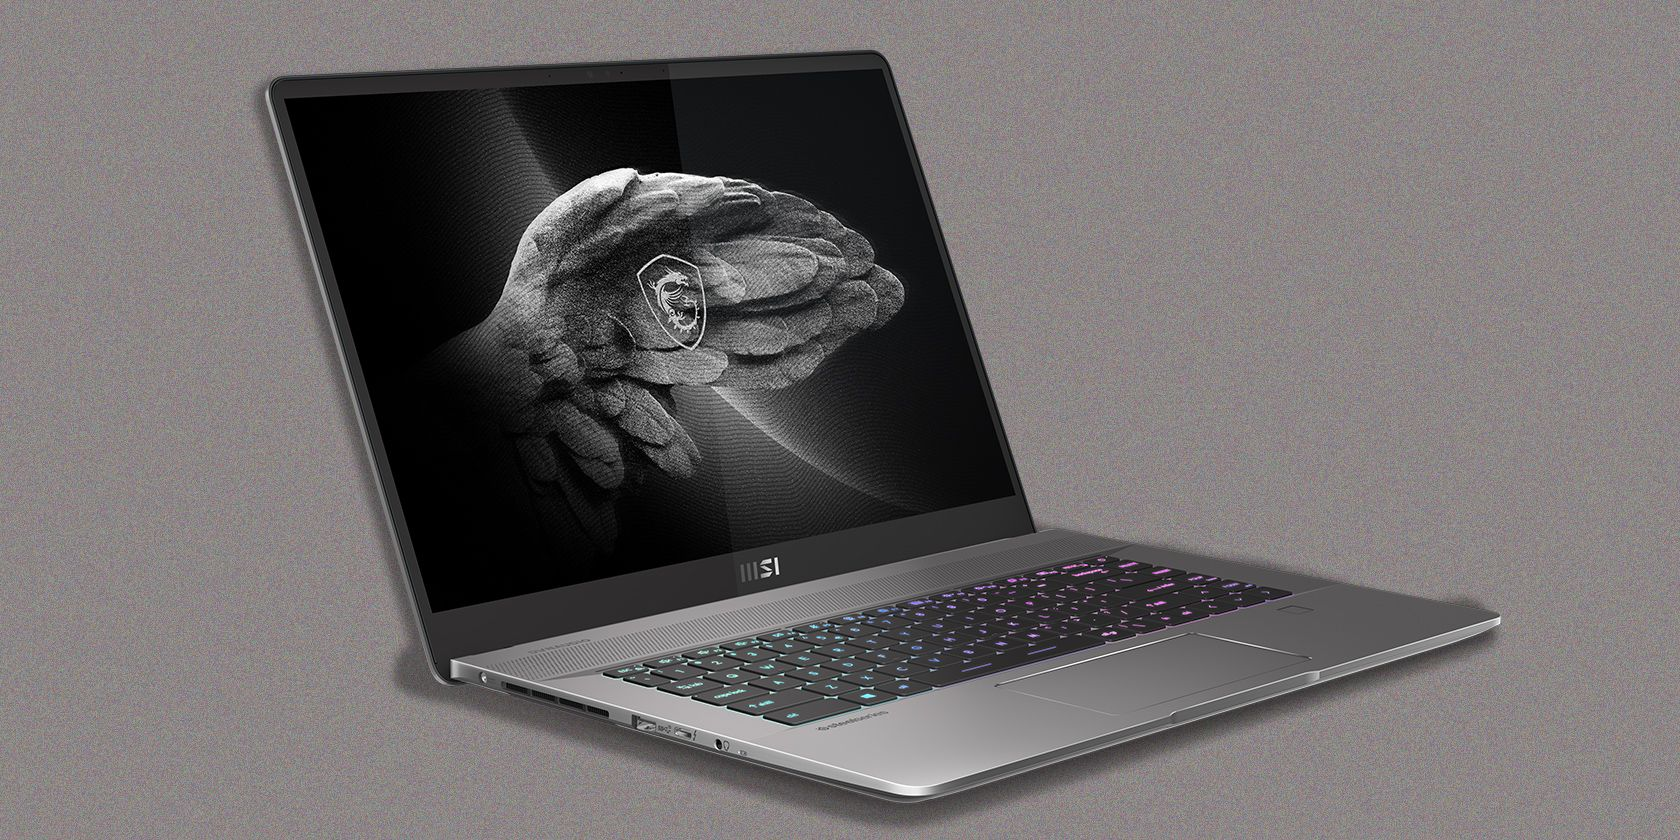 MSI Launches New Creator Laptops Targeted at the MacBook Pro